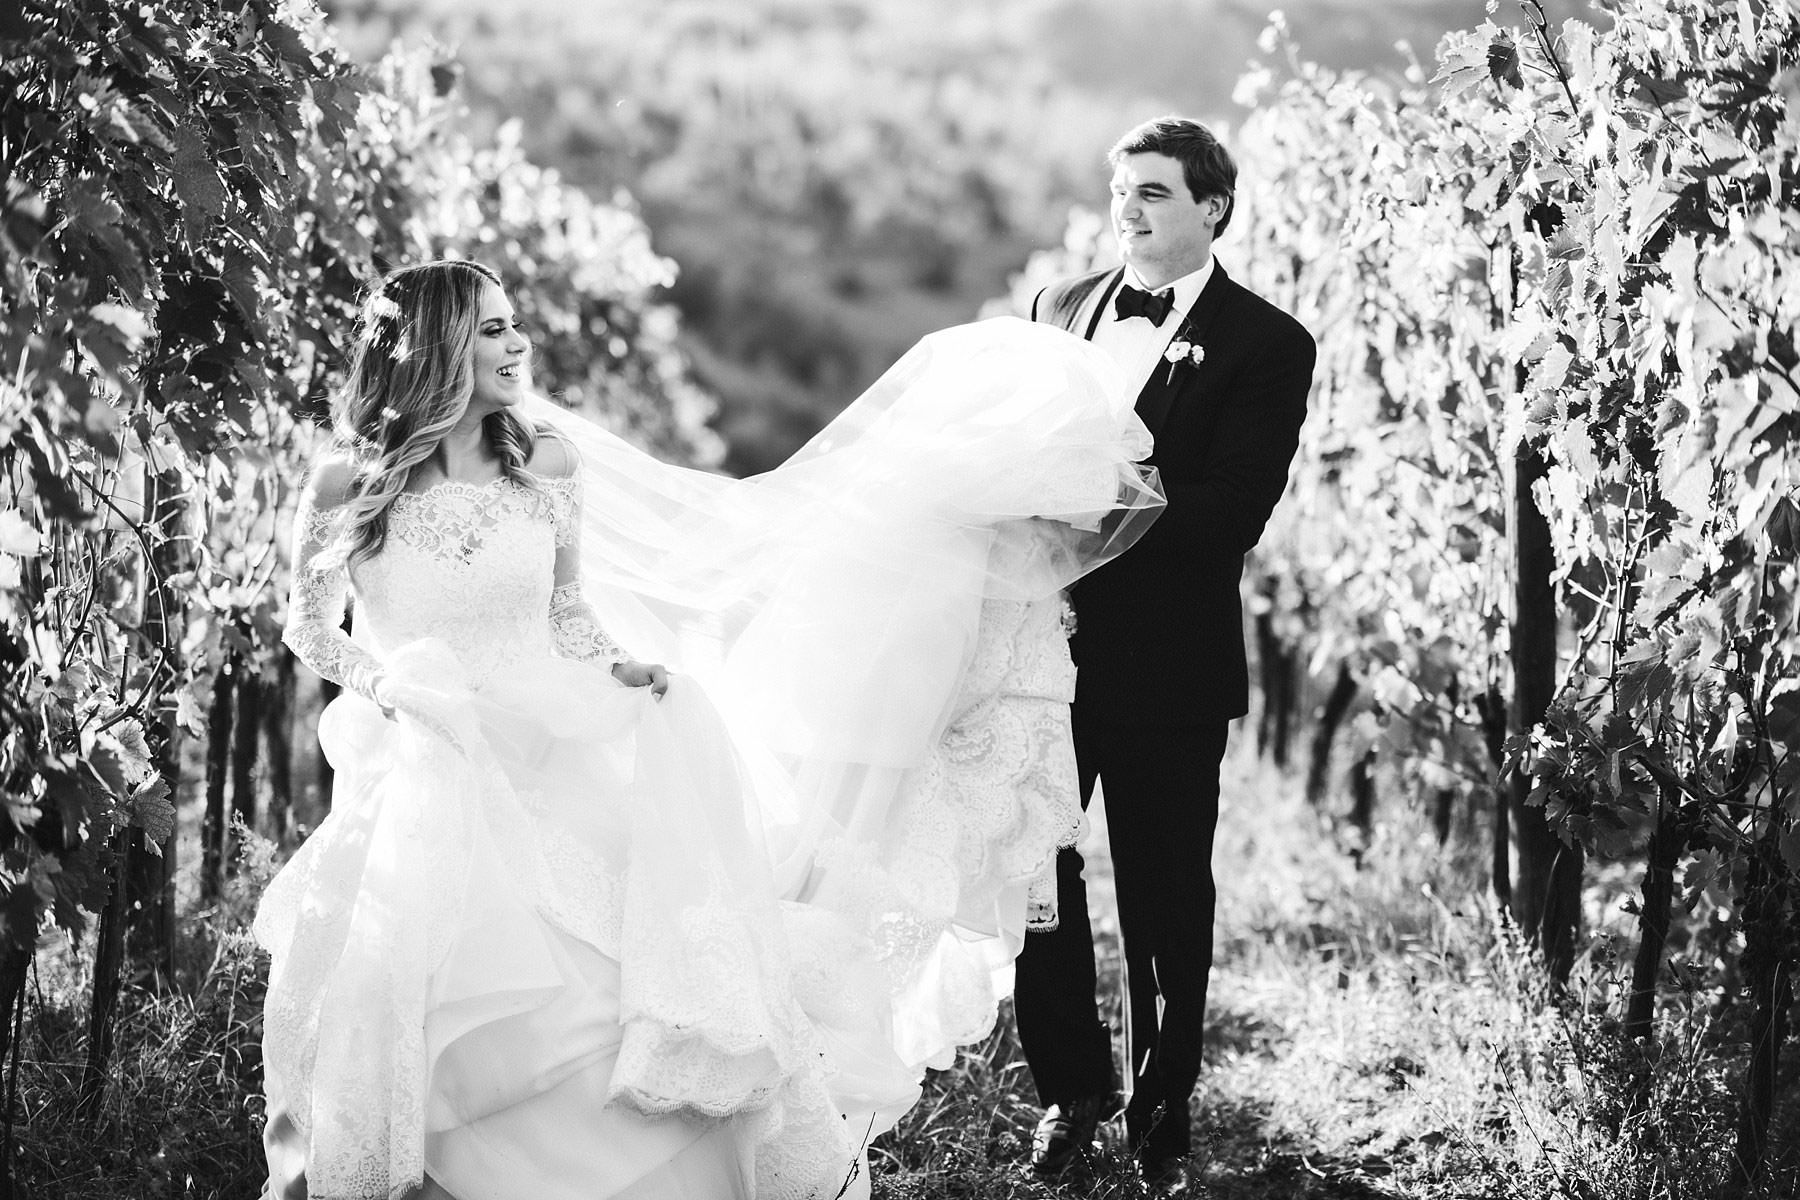 Beautiful bride and groom picture in Chianti vineyard near Villa Mangiacane. Destination wedding in Italy